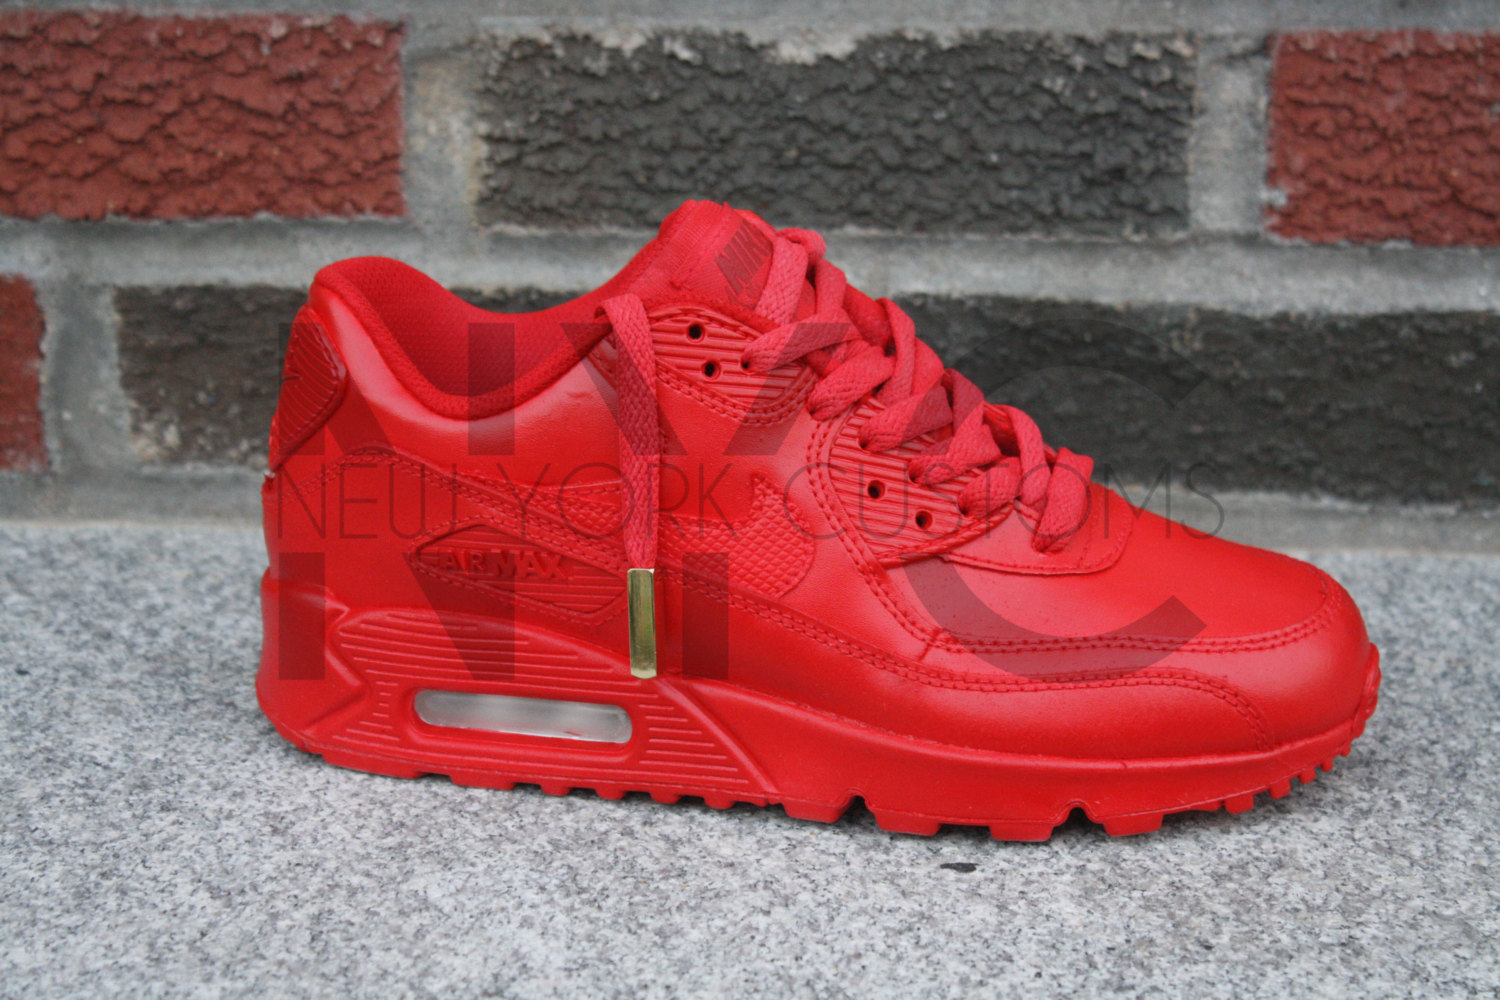 air max yeezy red october